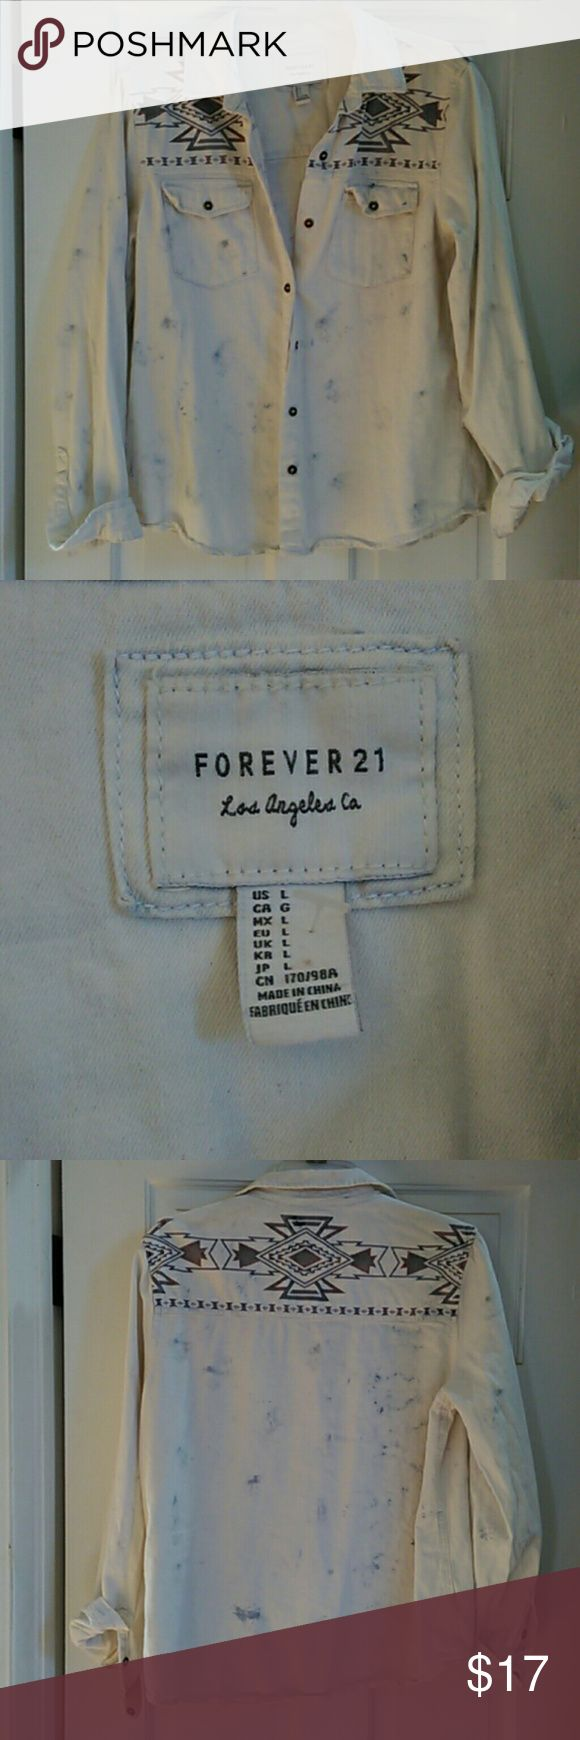 Forever21 distressed flannel ADORABLE forever21 distressed button up flannel with aztec printing. Size L , in perfect condition, new without tags, from a smoke free home. Forever 21 Tops Button Down Shirts https://www.fanprint.com/stores/fight-club?ref=5750